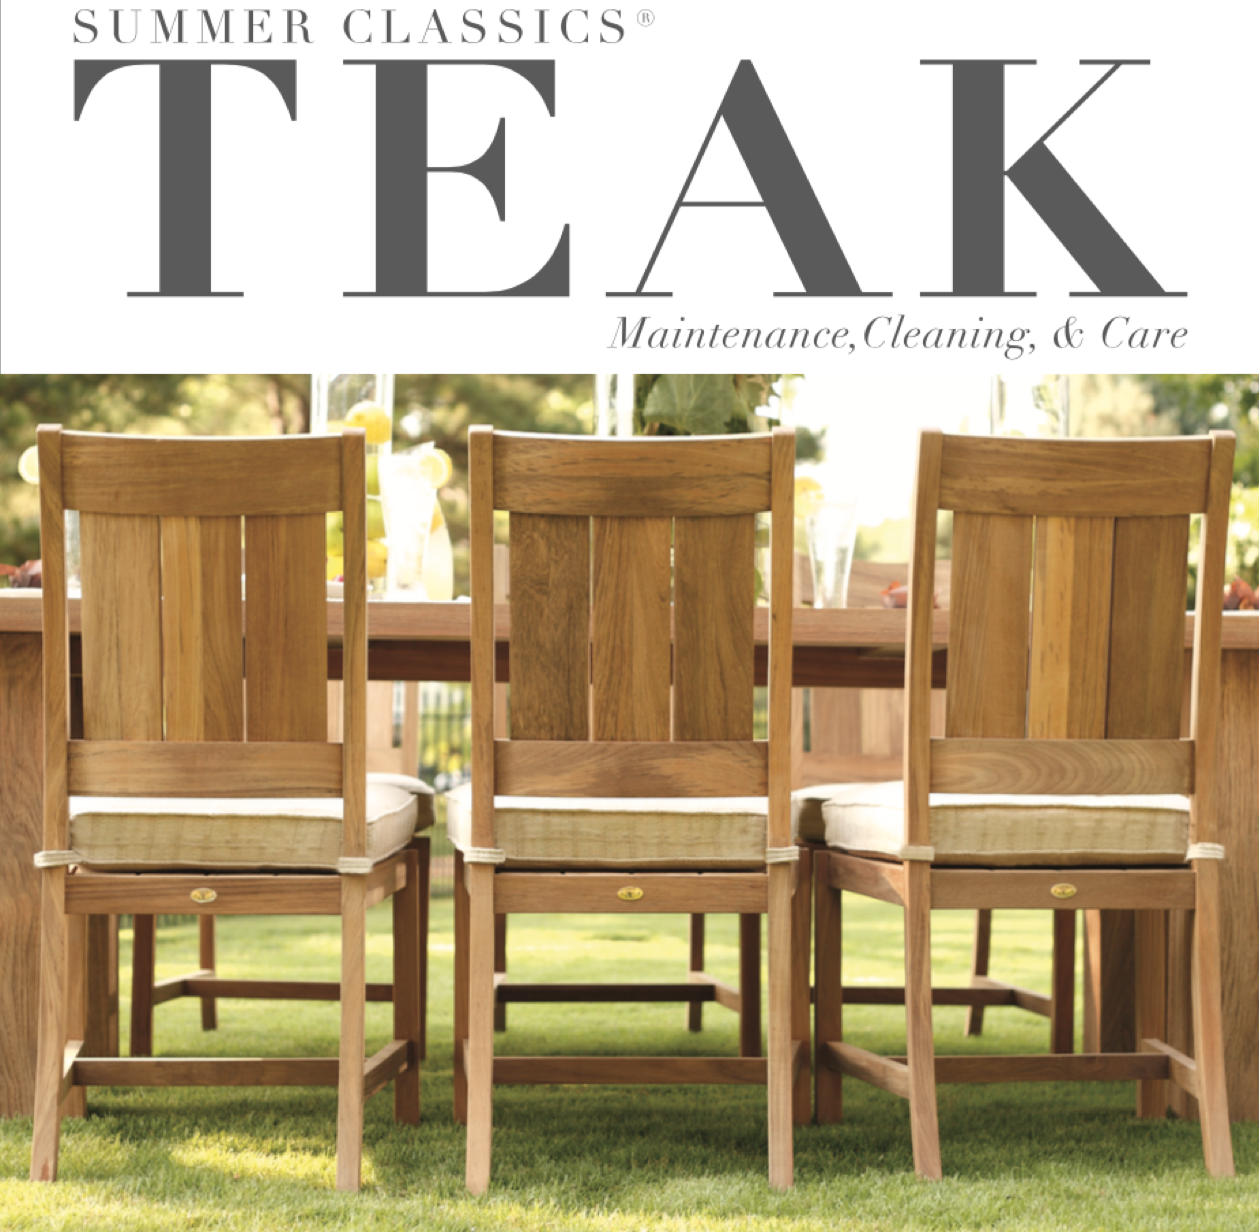 Summer Classics teak is made of the highest quality slow growth plantation  raised teak. Teak - Teak Tweak: Maintaining And Cleaning Teak Furniture Summer Classics